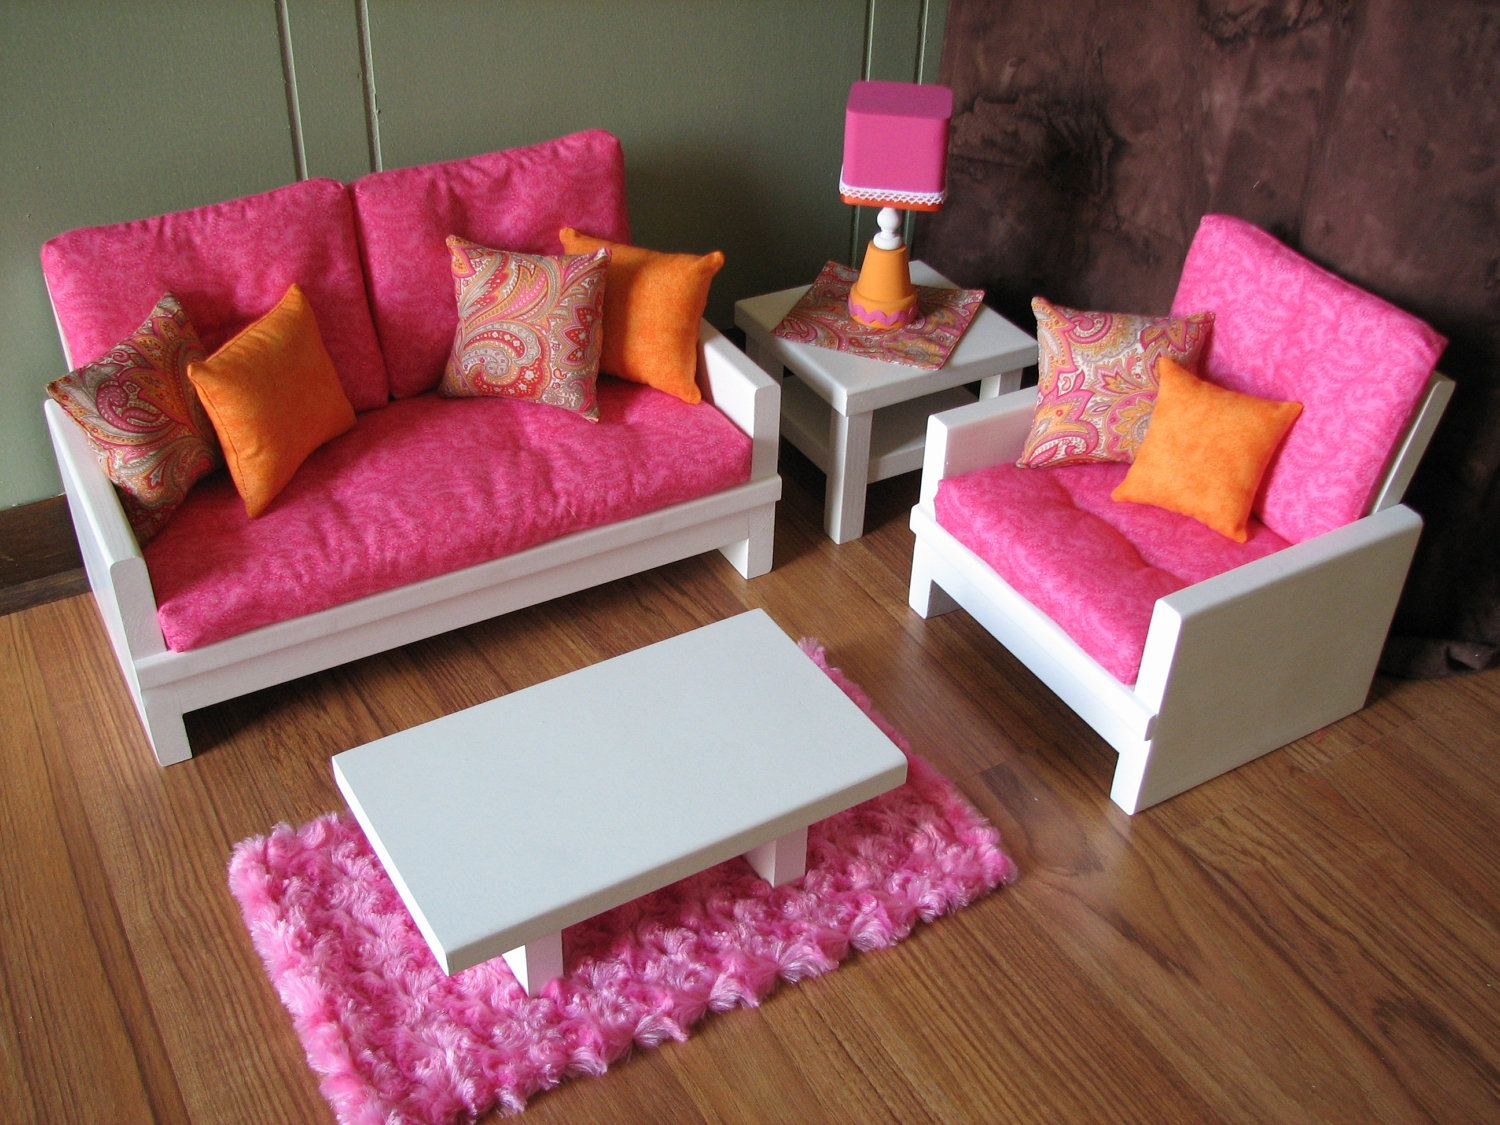 18 inch doll living room furniture American girl doll living room furniture